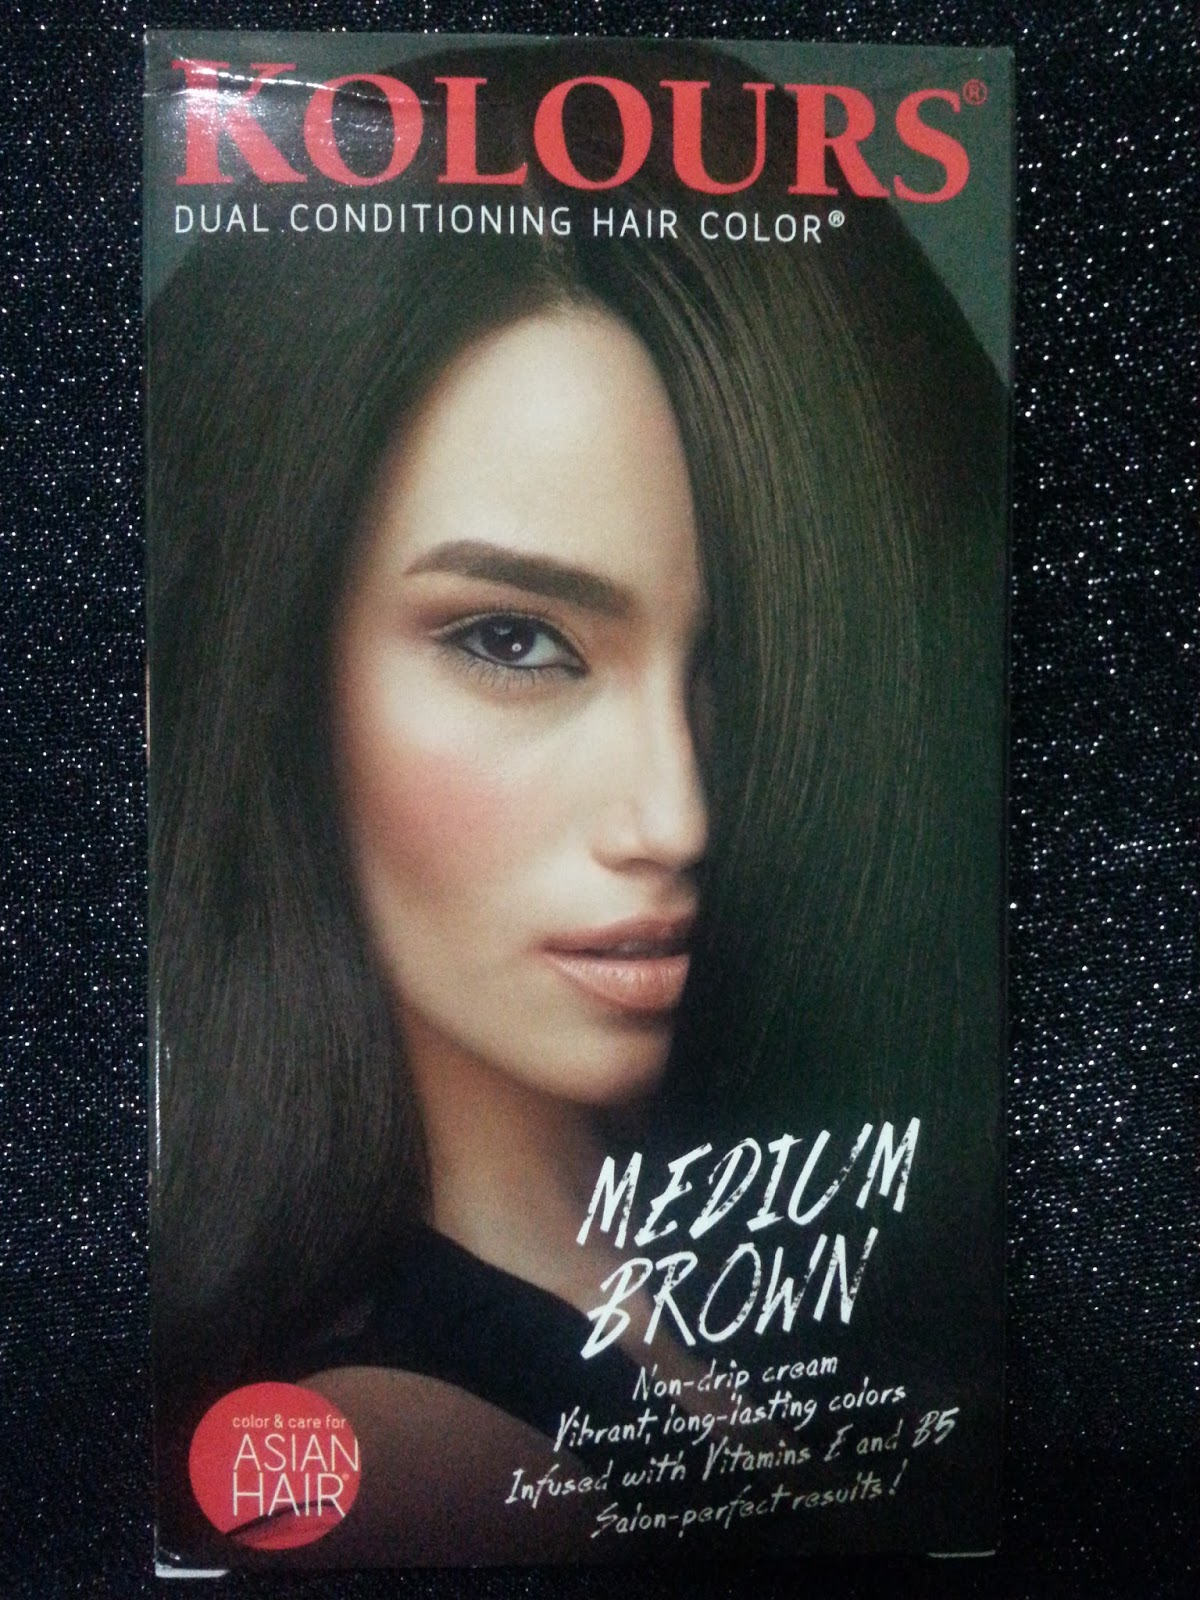 Niceladiesthings Review Kolours Dual Conditioning Hair Color In